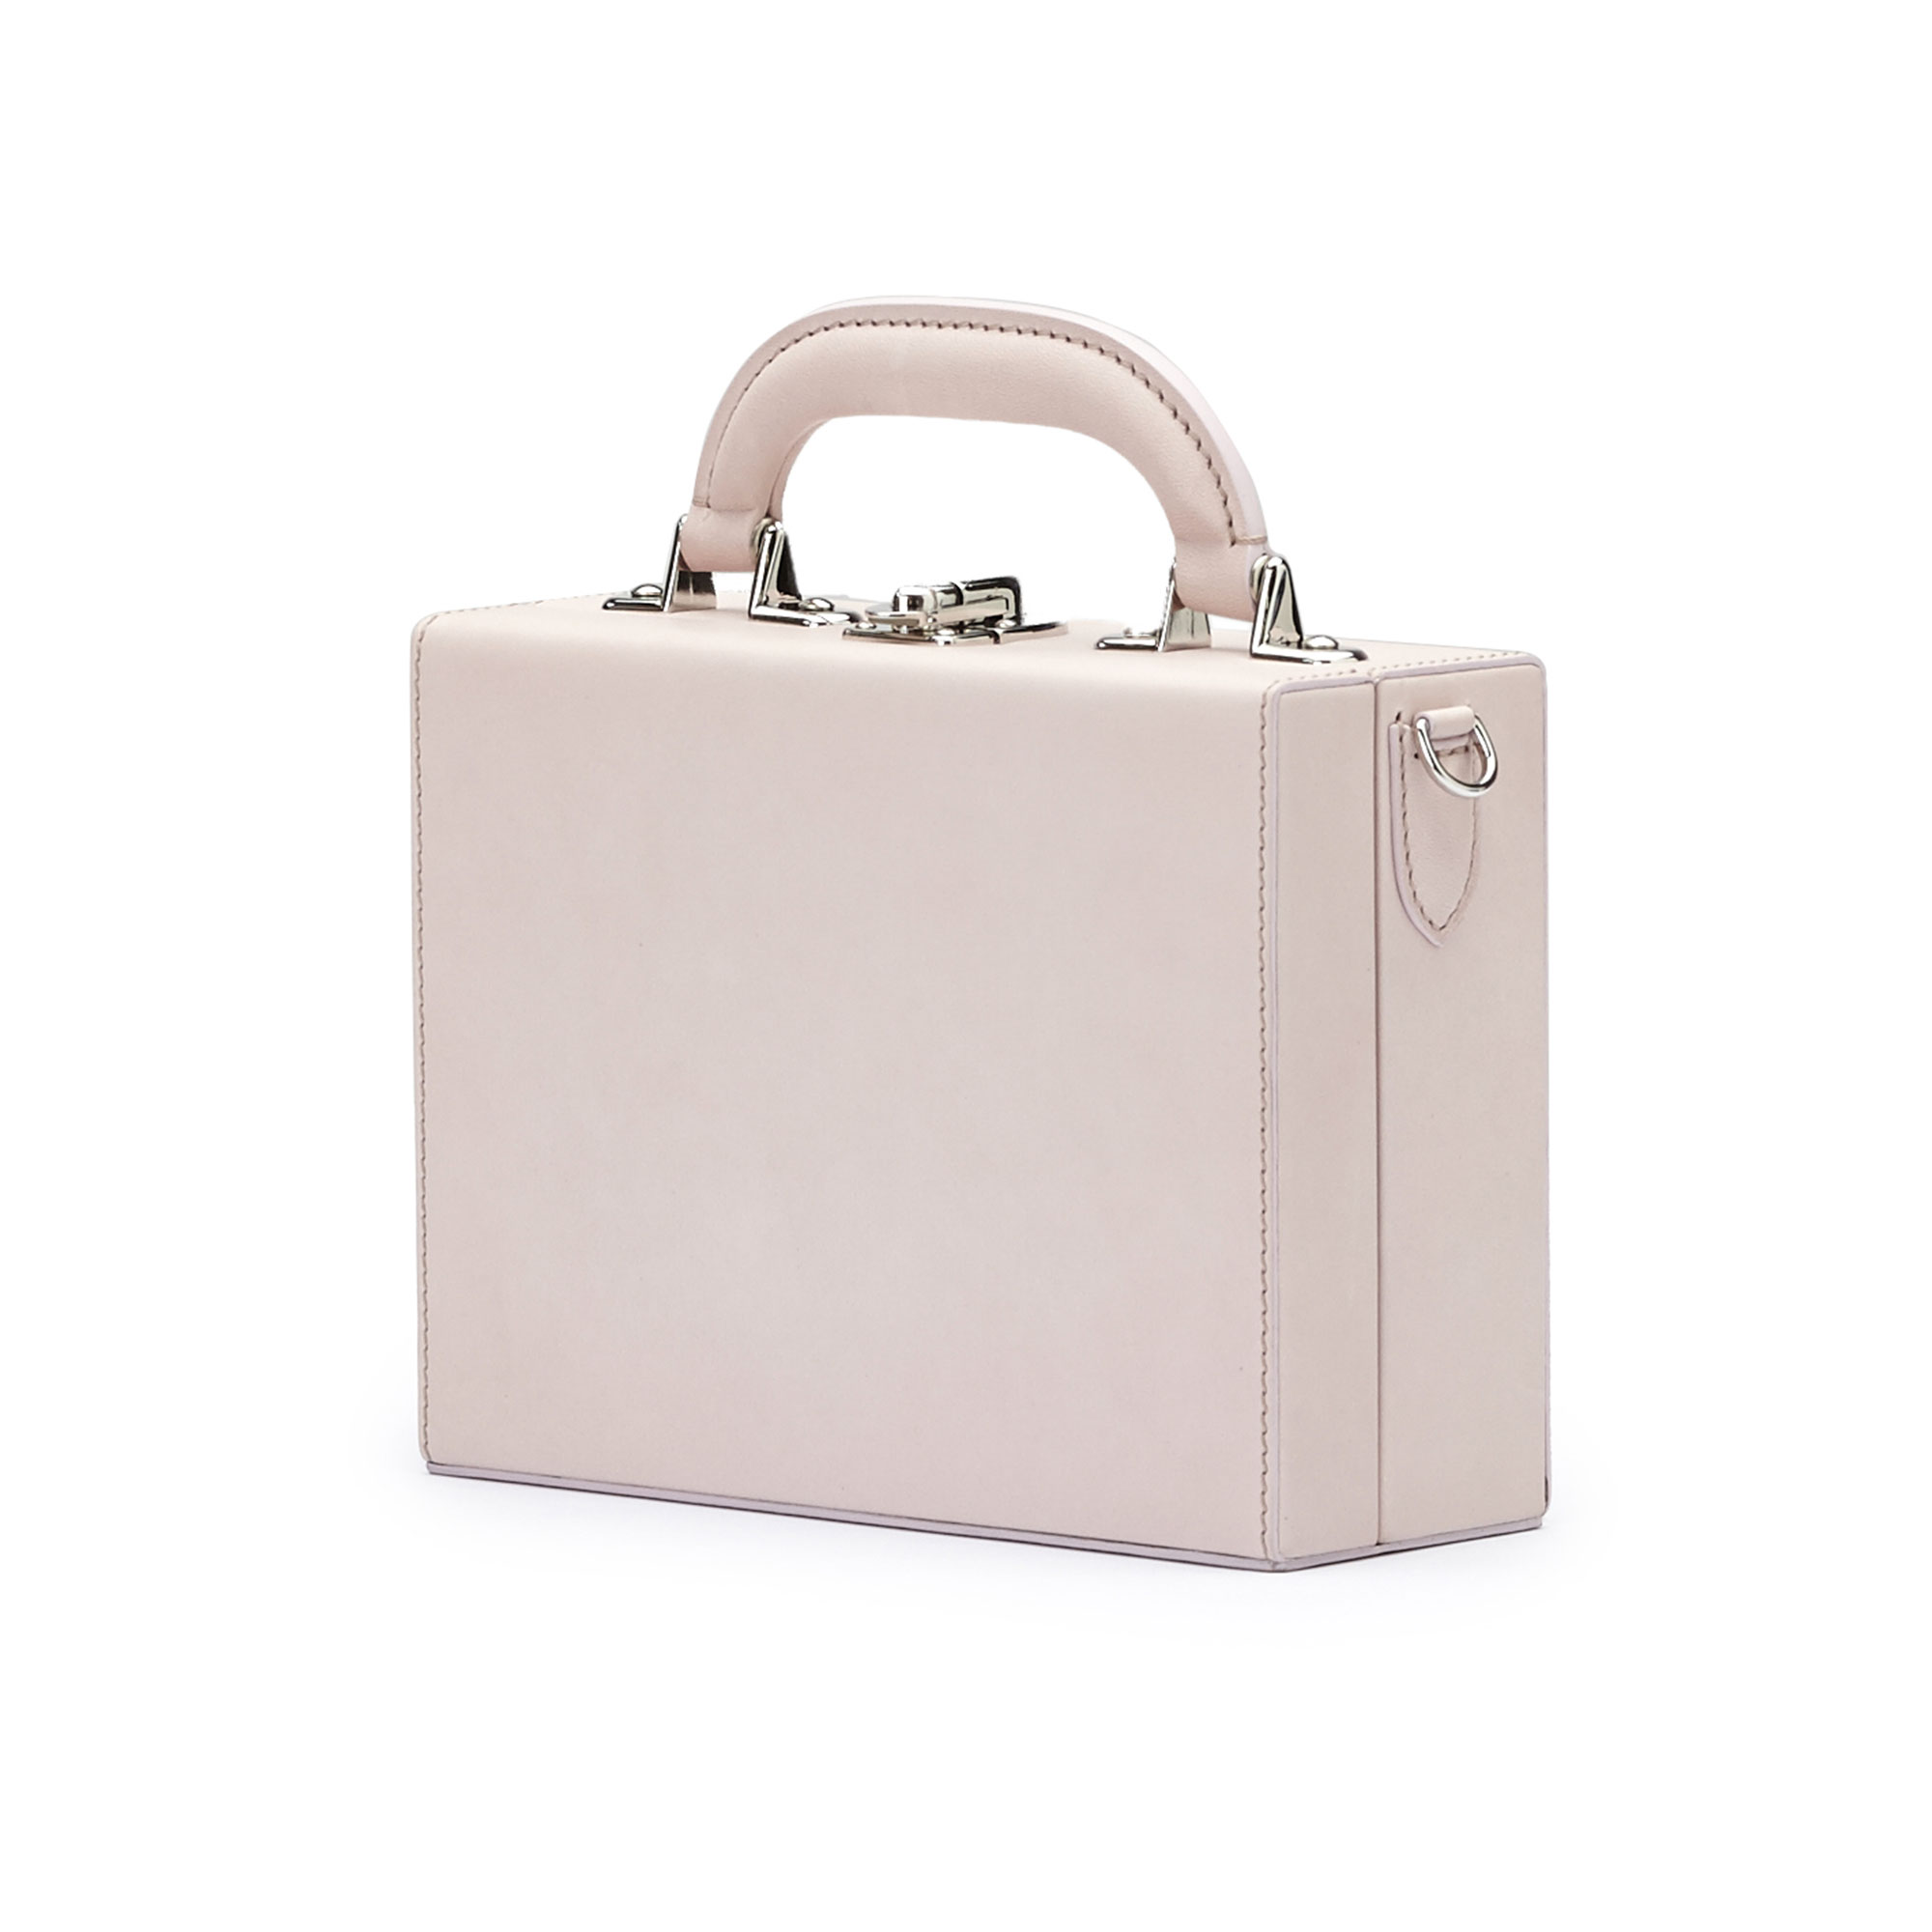 The pink french calf Mini Squared Bertoncina bag by Bertoni 1949 02